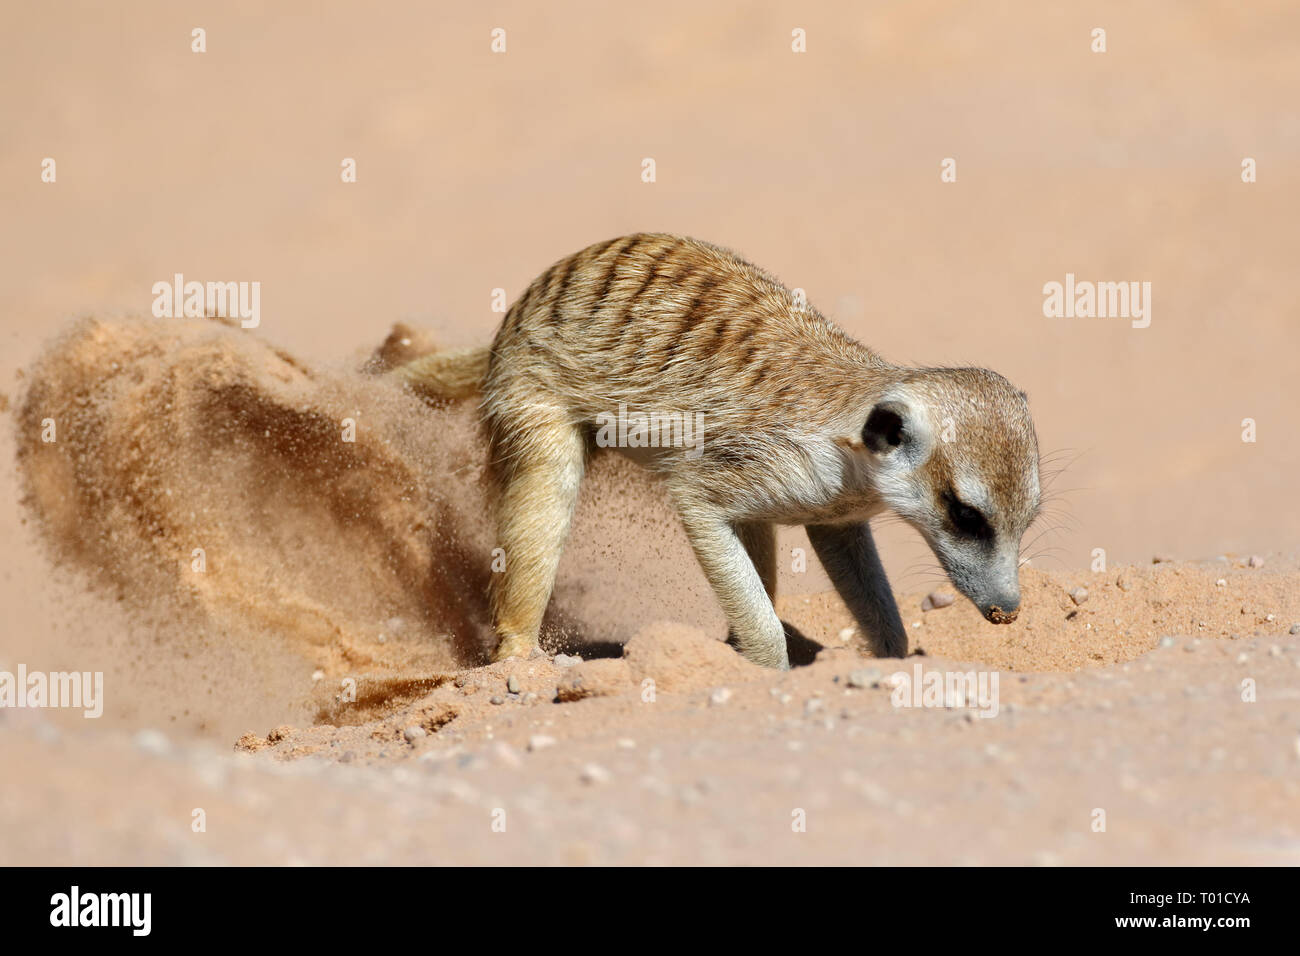 A meerkat (Suricata suricatta) foraging actively in natural habitat, Kalahari desert, South Africa - Stock Image